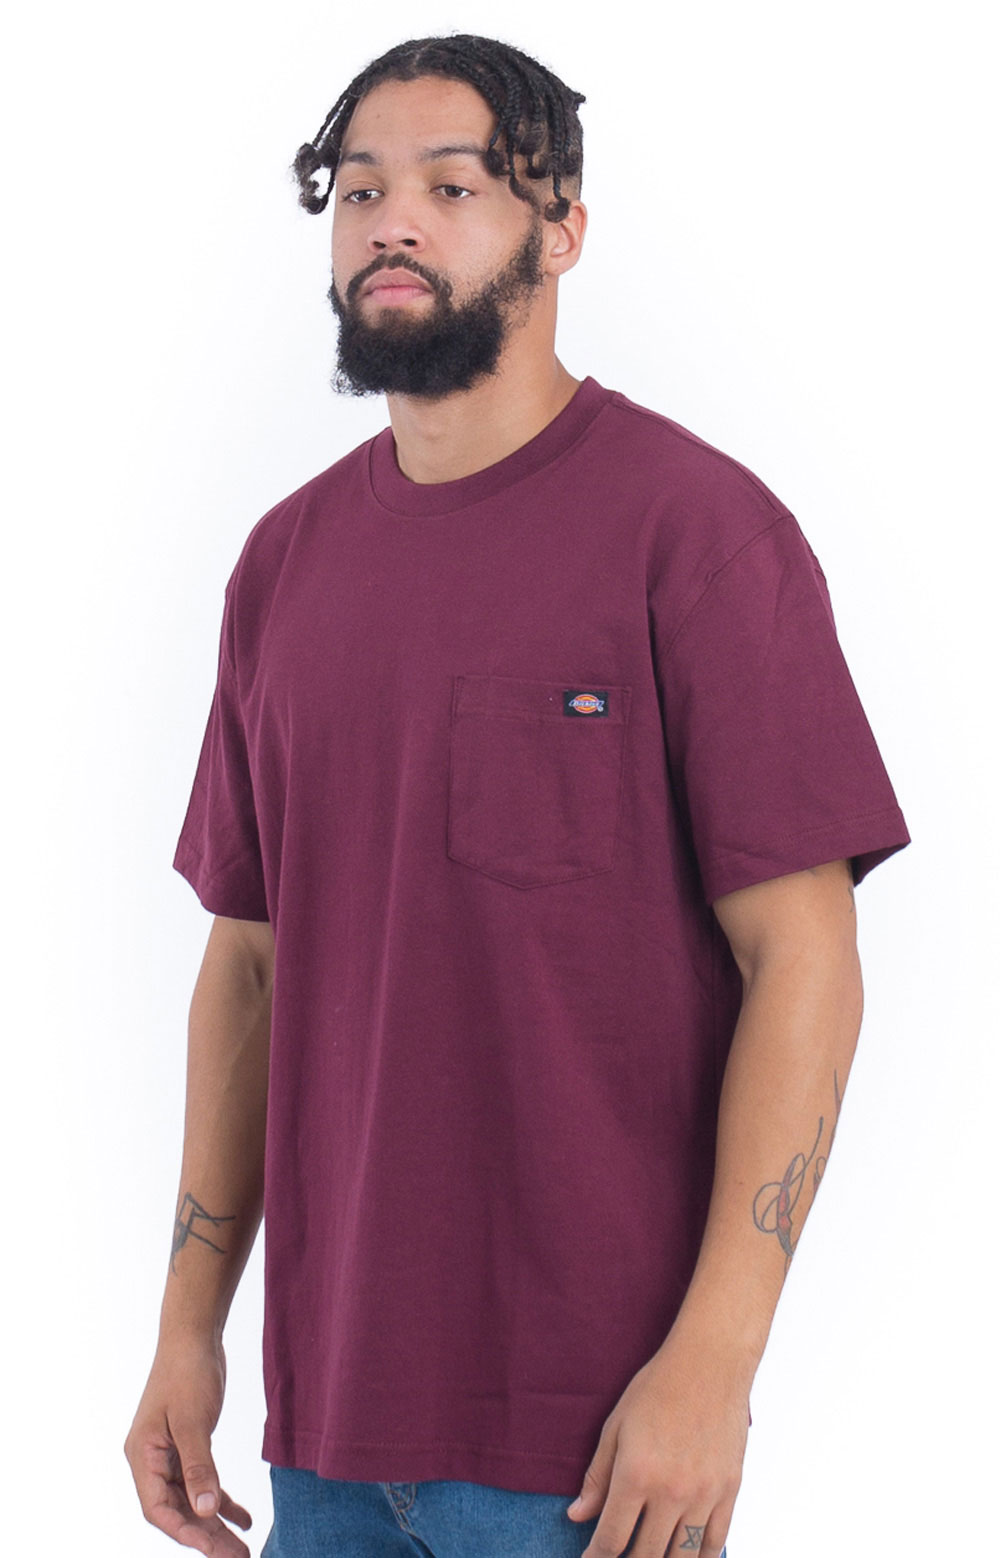 (WS450BY) S/S Heavyweight T-Shirt - Burgundy 2